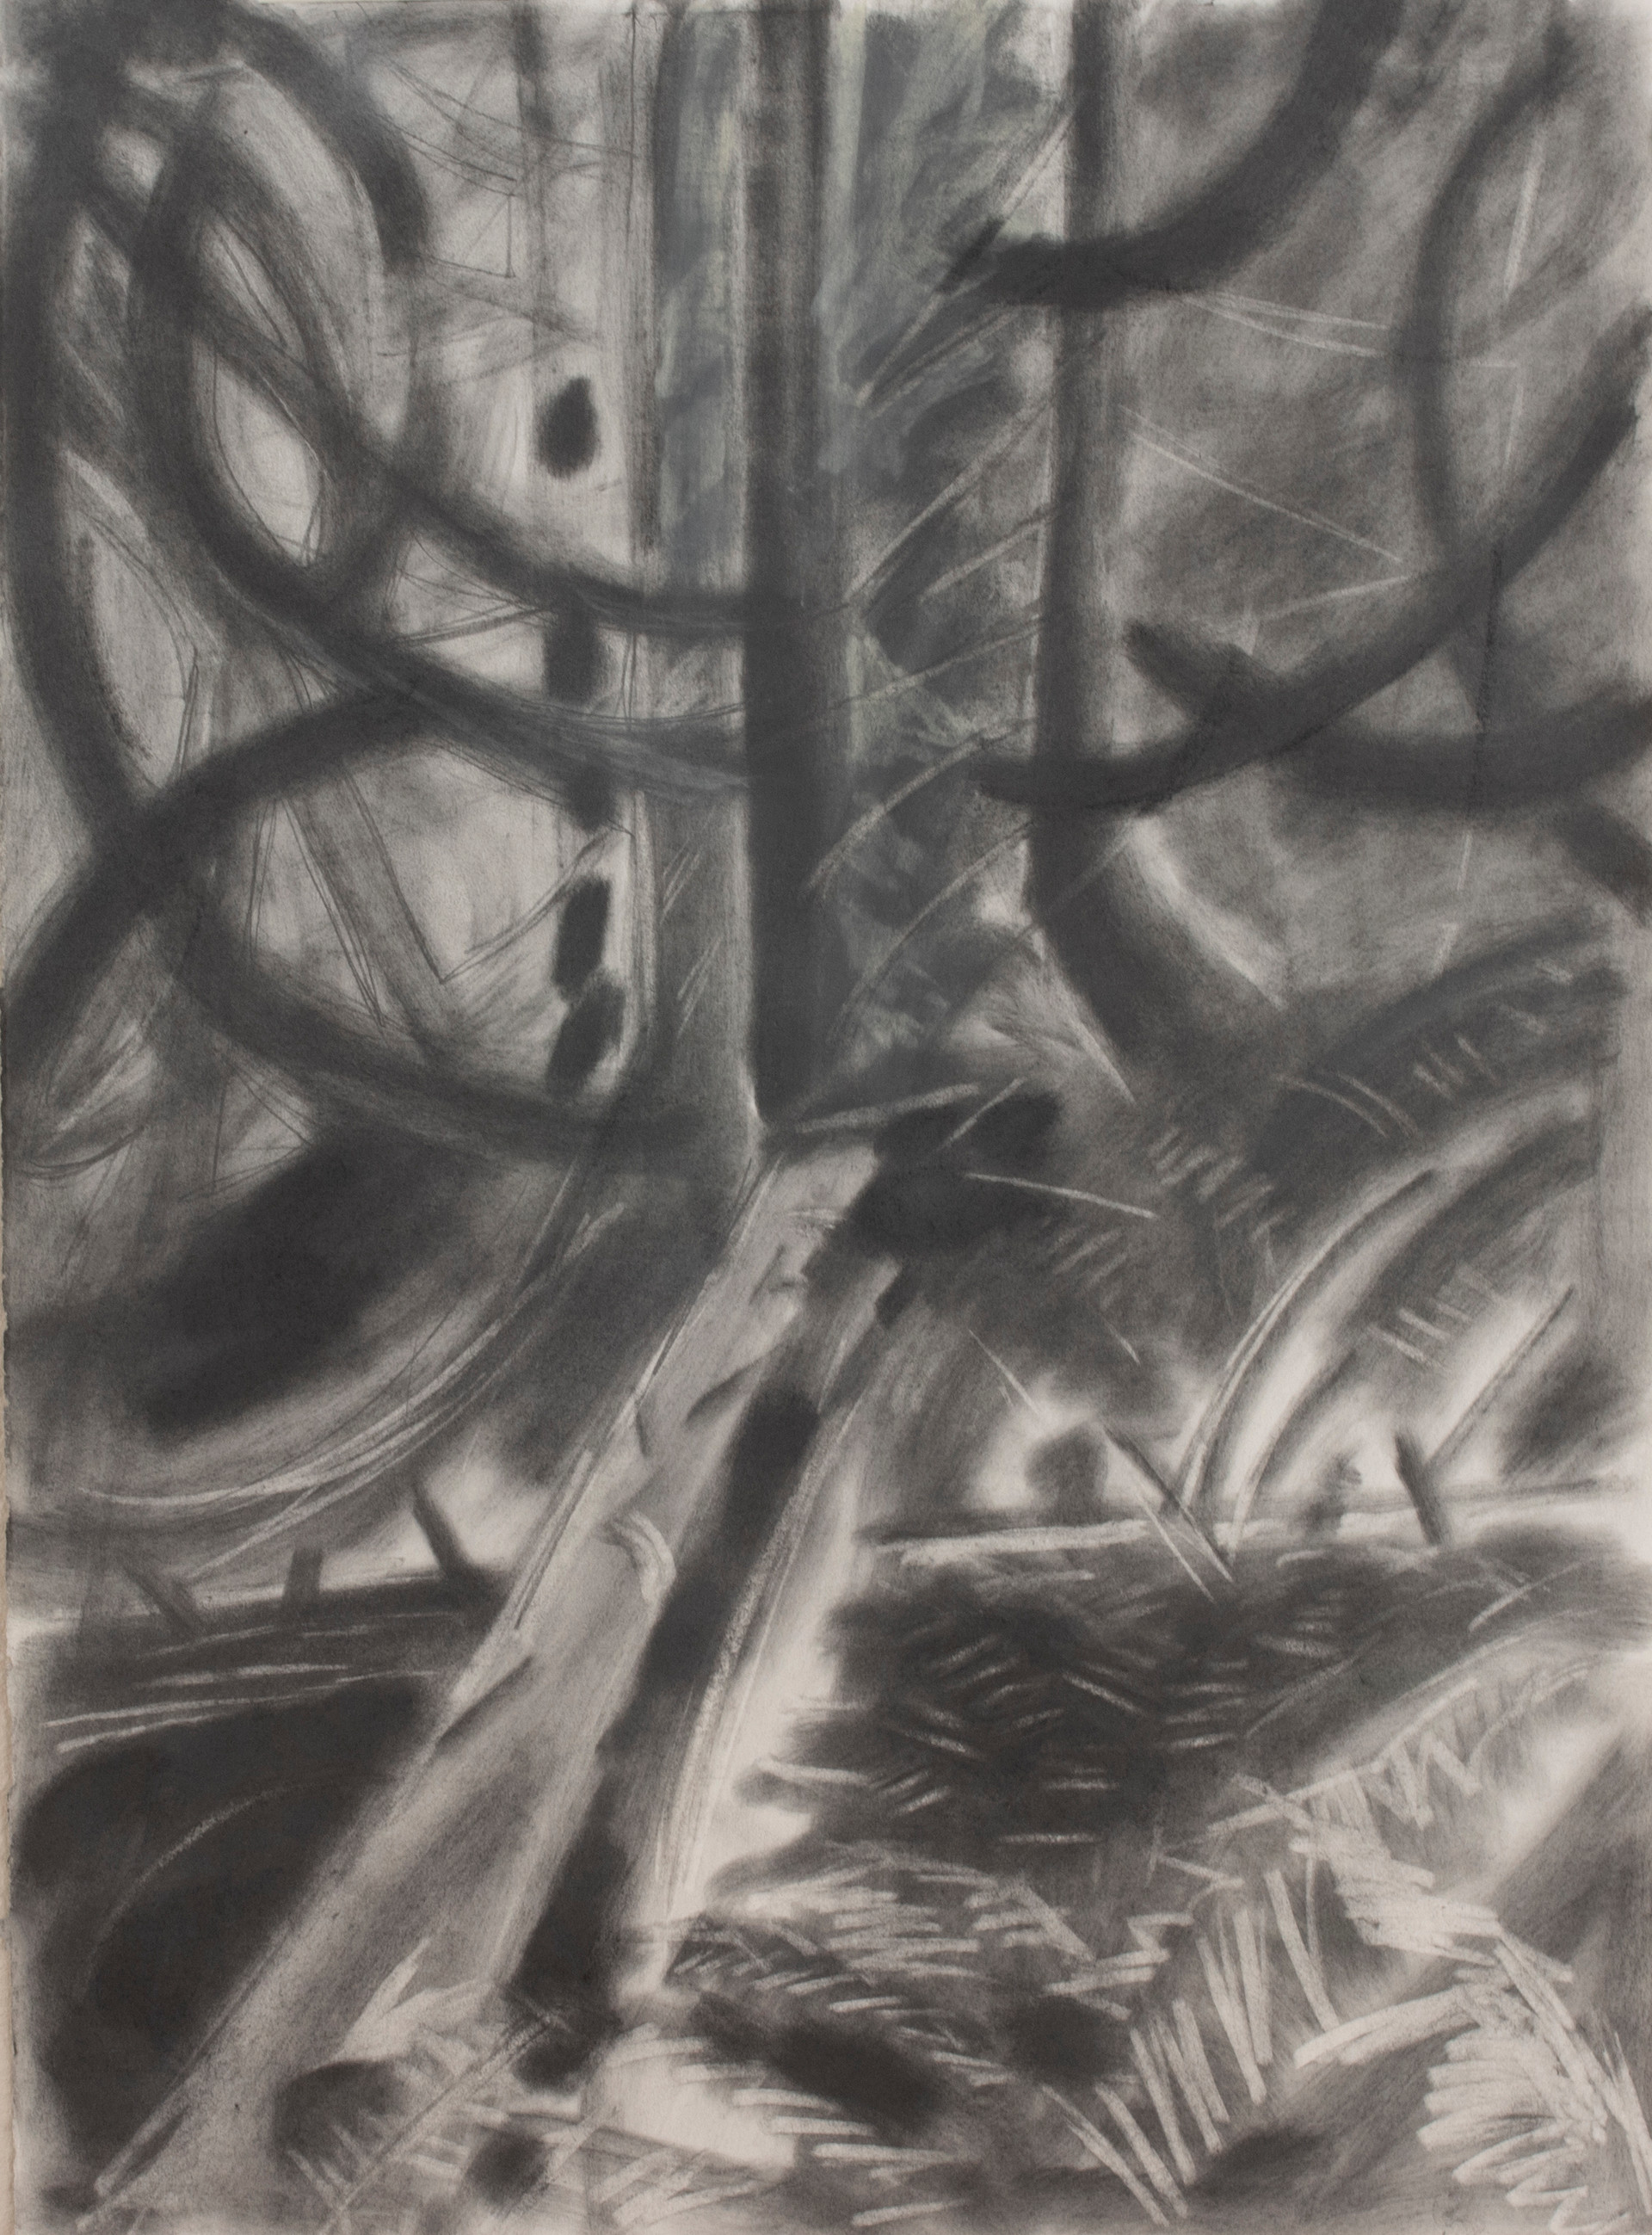 Forest 2, 2019, graphite on paper, 30x 22